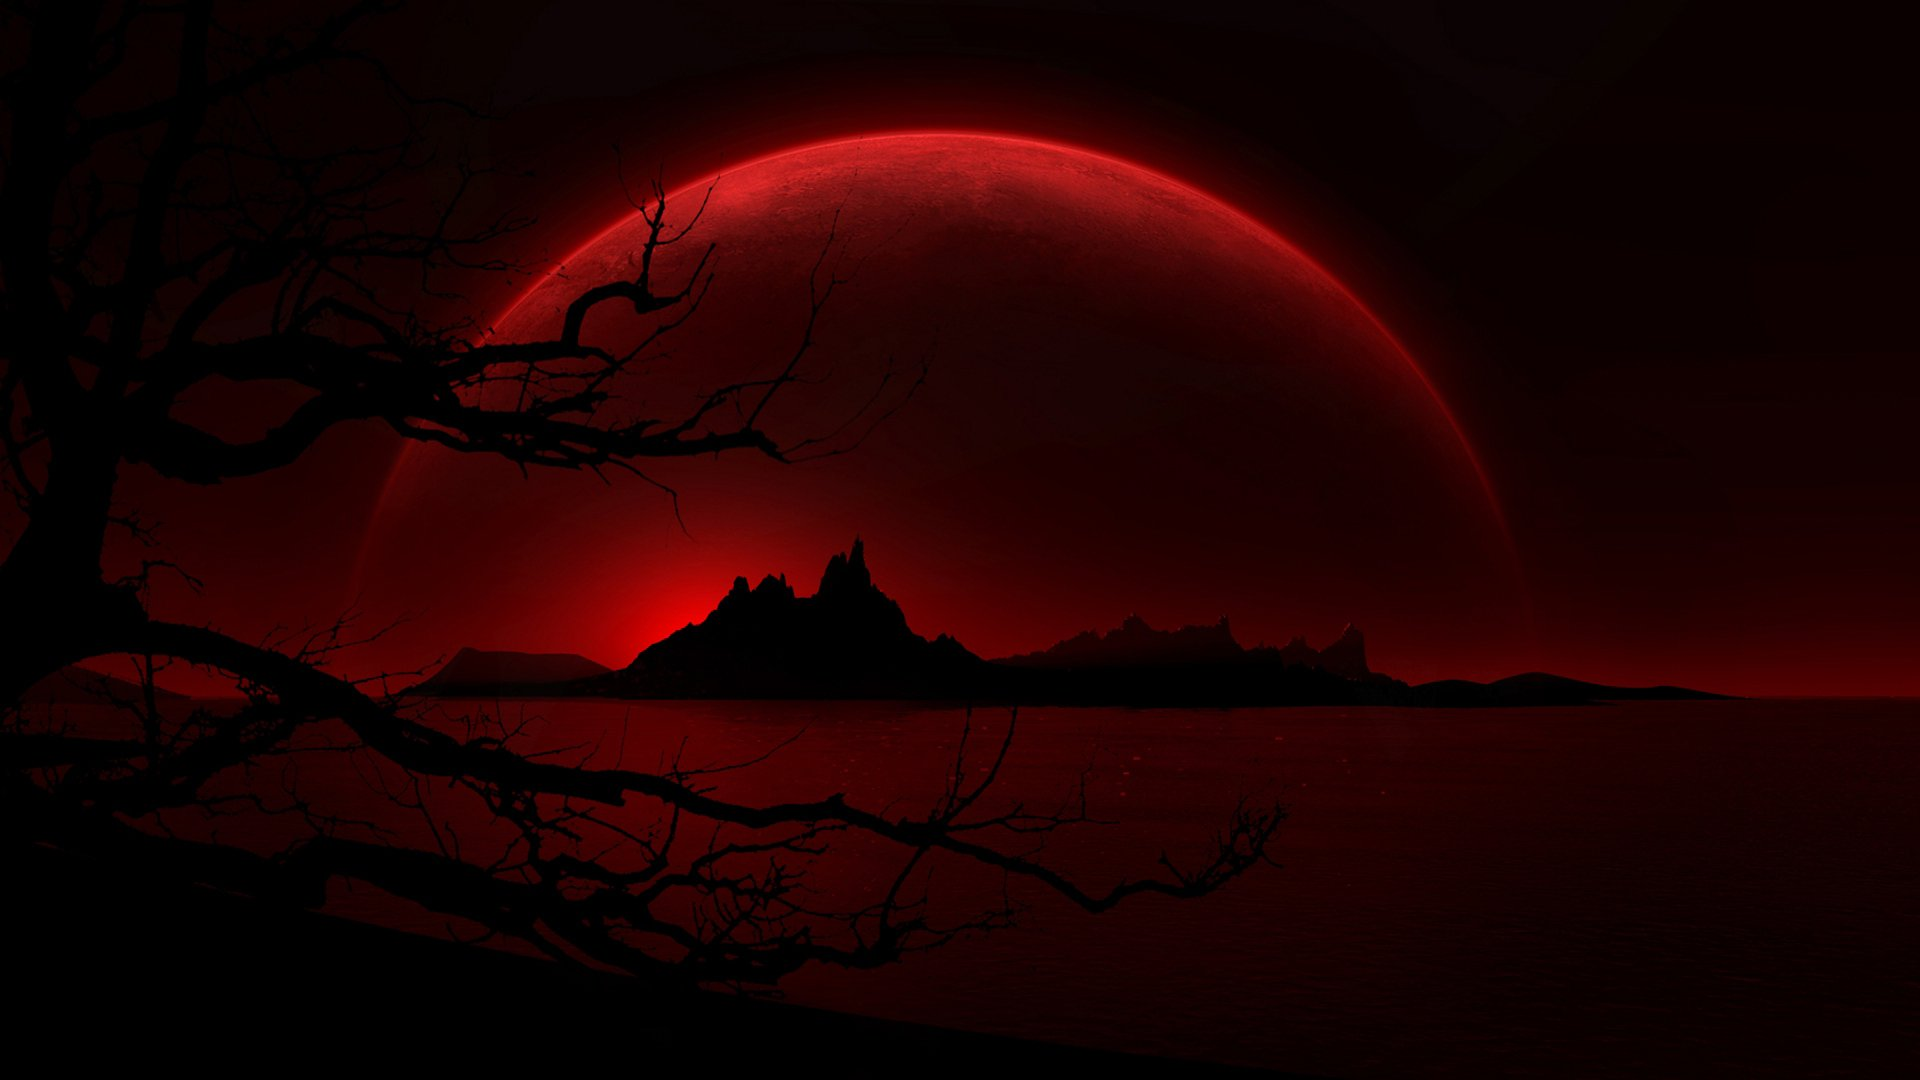 Blood Moon HD Wallpaper - WallpaperSafari